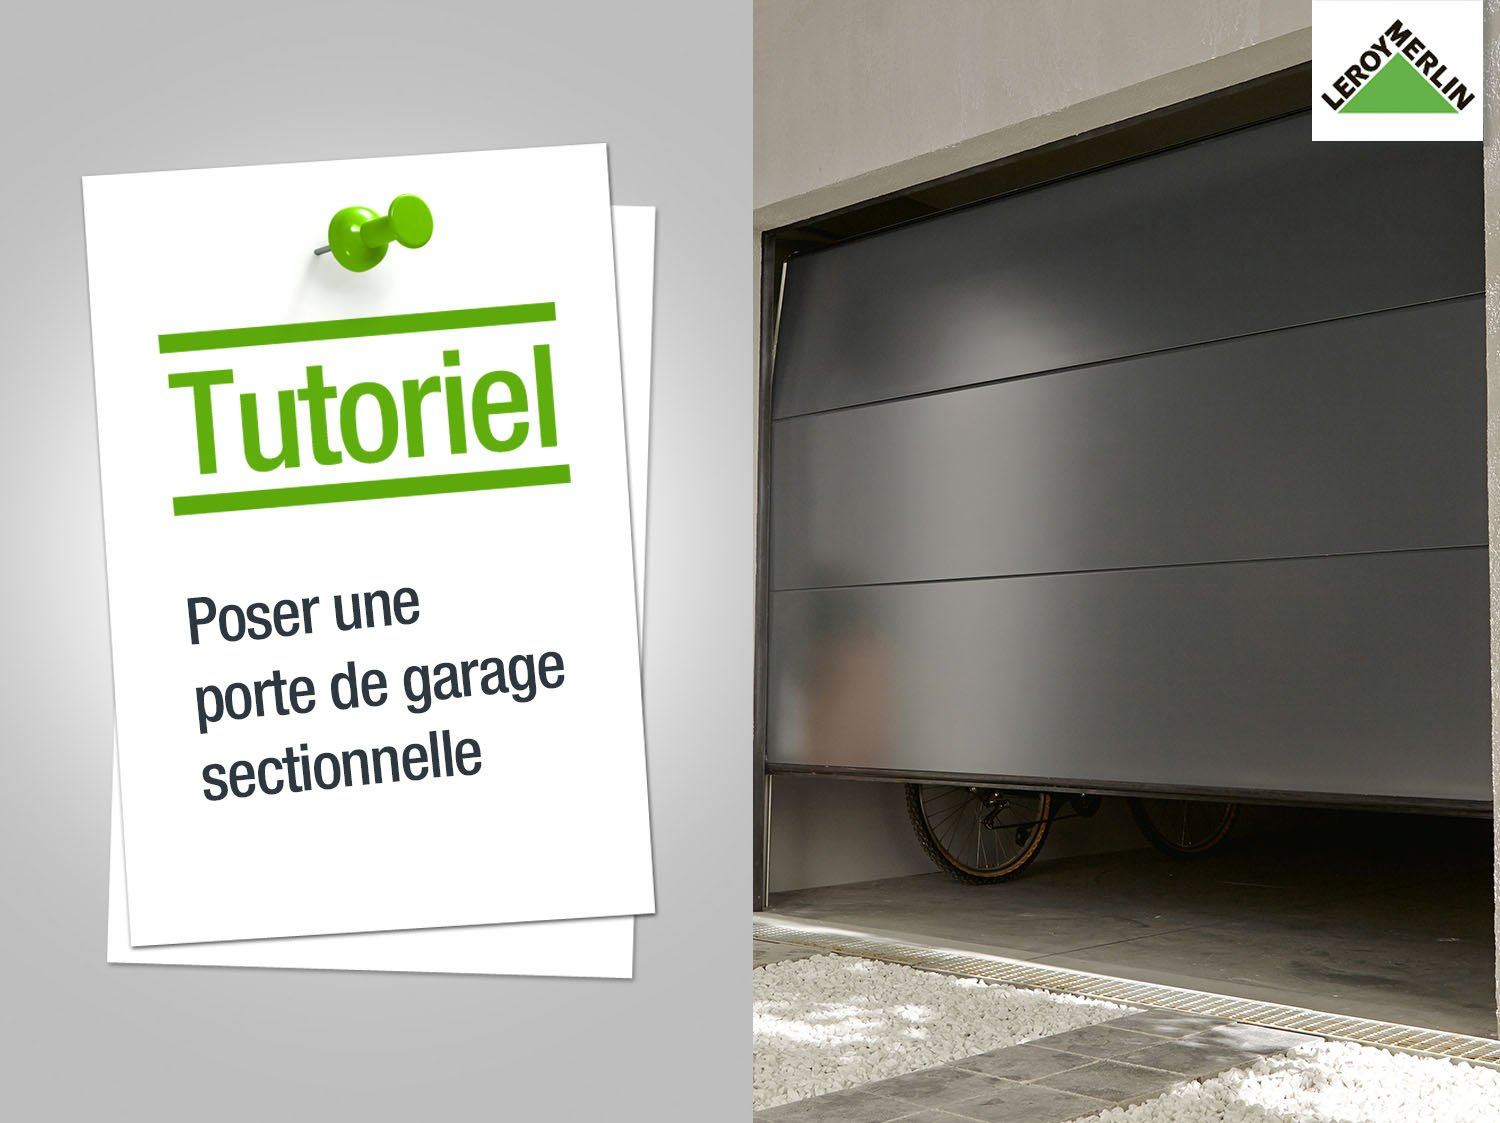 Porte de garage sectionnelle leroy merlin sur mesure for Porte de garage sectionnelle sur mesure hormann